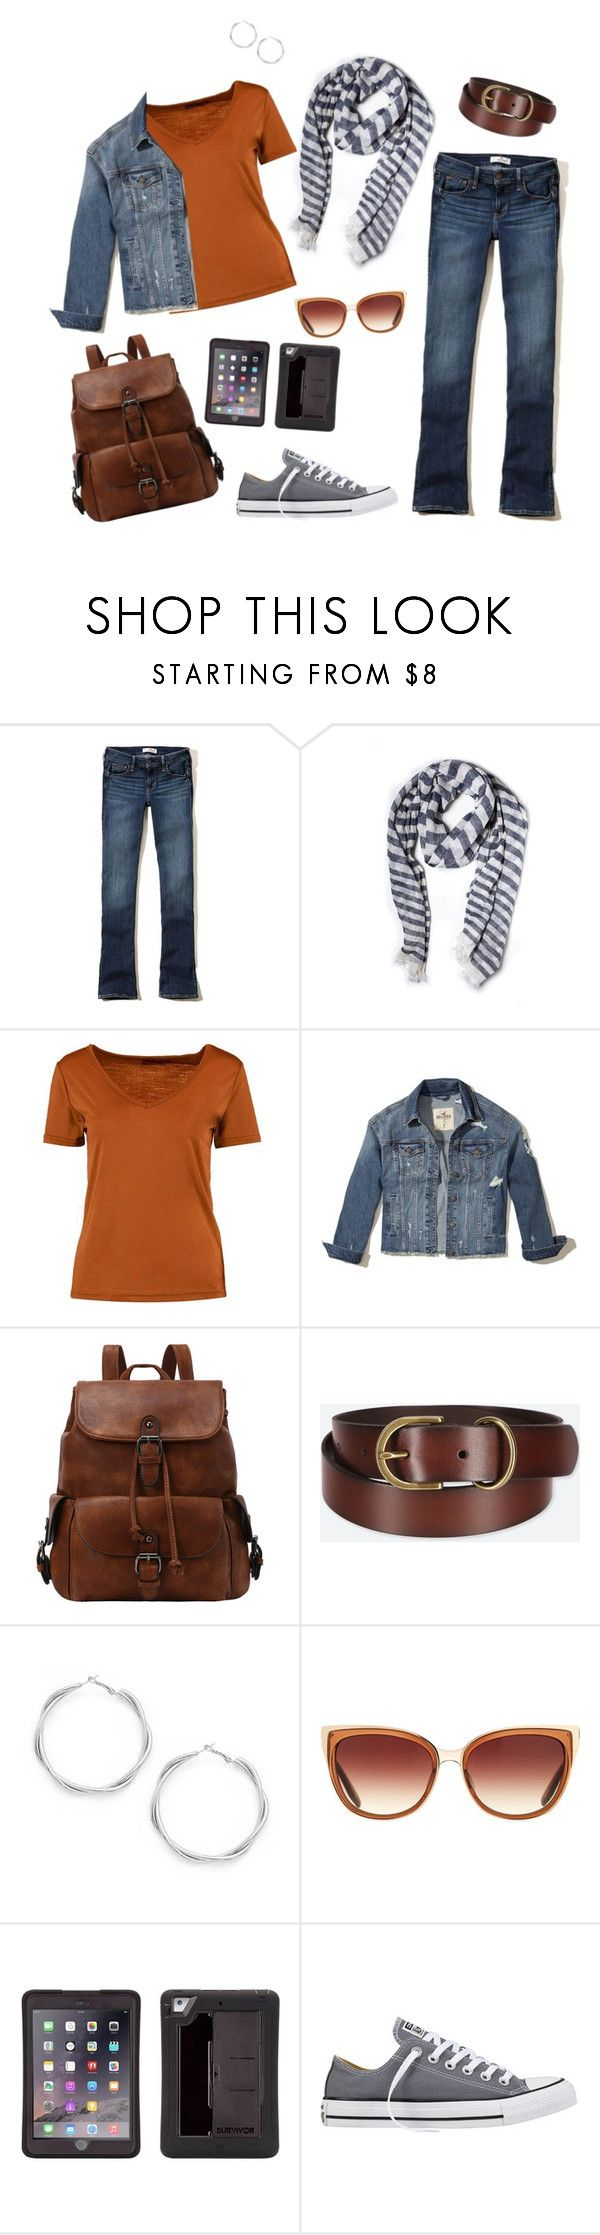 """""""#20"""" by chris-boyce ❤ liked on Polyvore featuring Hollister Co., Boohoo, Uniqlo, Barton Perreira, Griffin, Converse, orange, converse, Jeanjacket and CasualChic"""